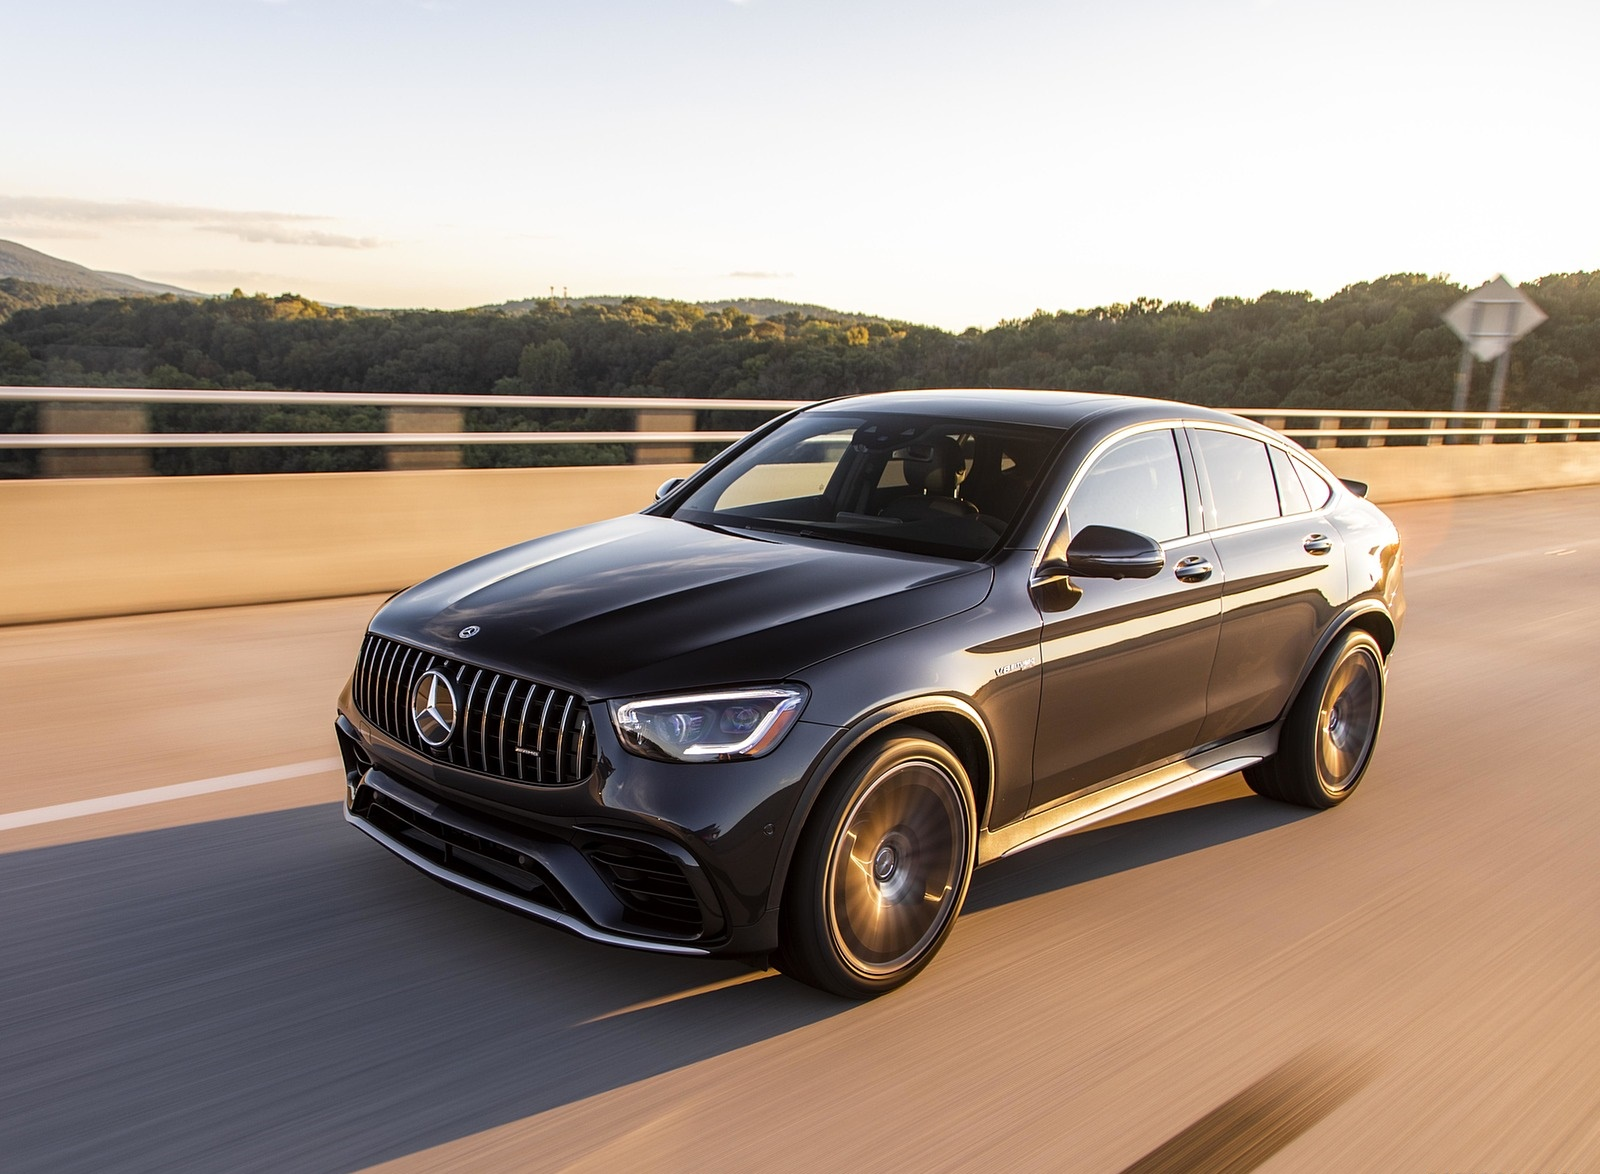 2020 Mercedes-AMG GLC 63 S Coupe (US-Spec) Front Three-Quarter Wallpapers (3)